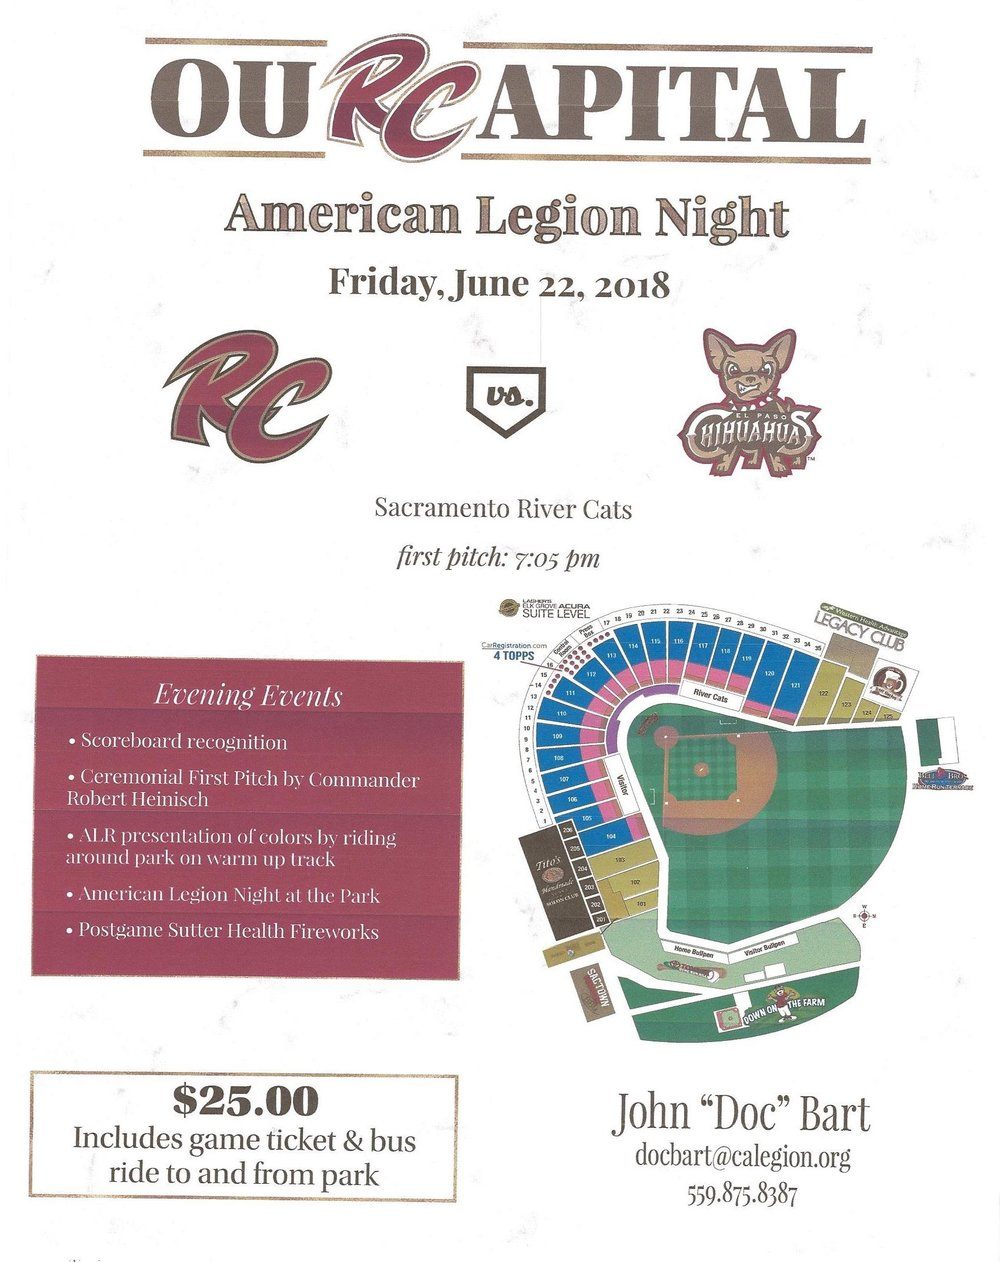 River_Cats_American_Legion_Night.jpg